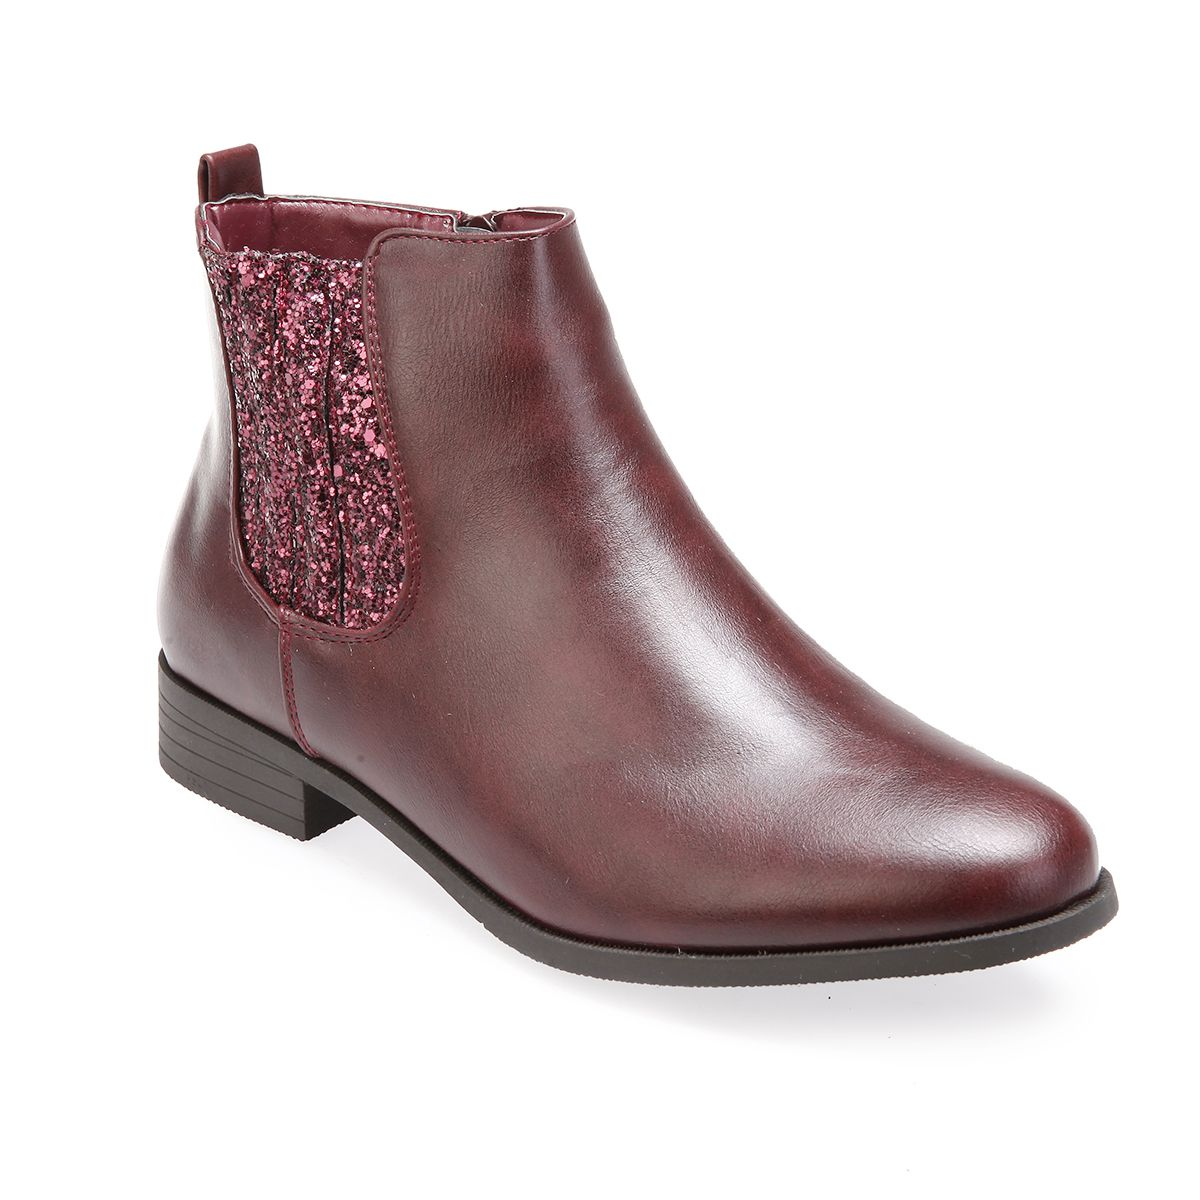 La Modeuse Bottines chelsea bordeaux à paillettes Rouge - Chaussures Bottine Femme